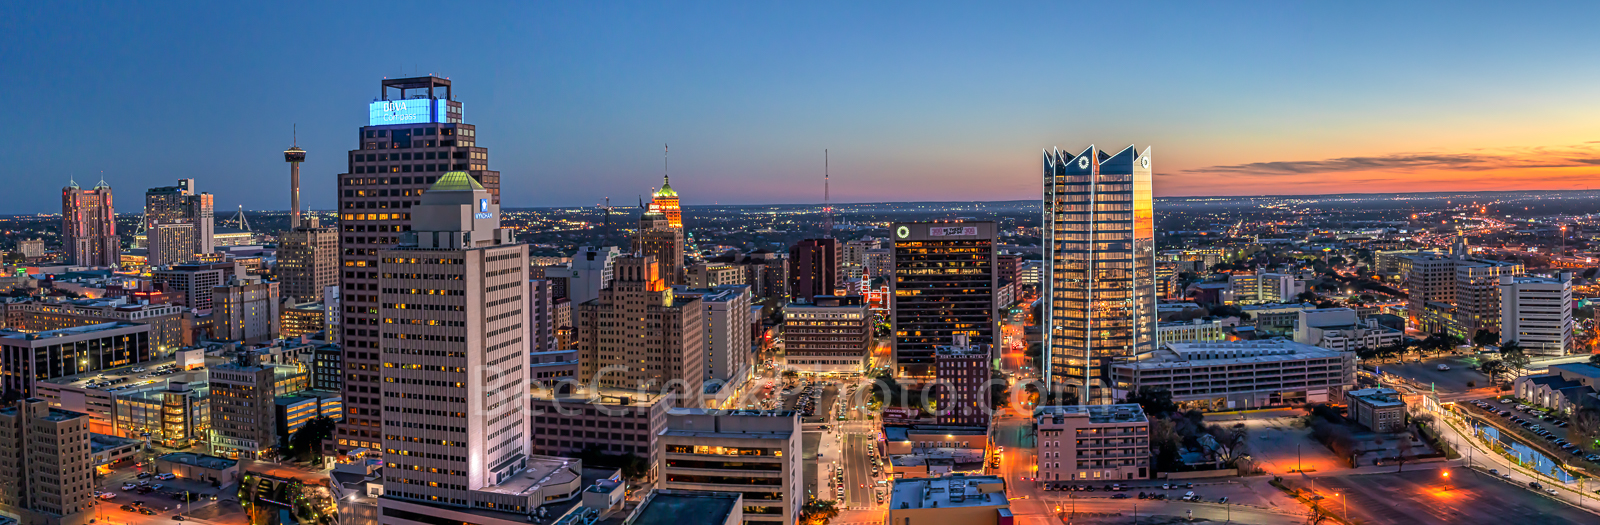 San Antonio skyline sunset, San Antonio skyline, San Antonio, San Antonio images, San Antonio pictures, San Antonio Cityscape, texas, downtown, Frost Tower, Frost, Tower Life, building, pano, panorama, photo